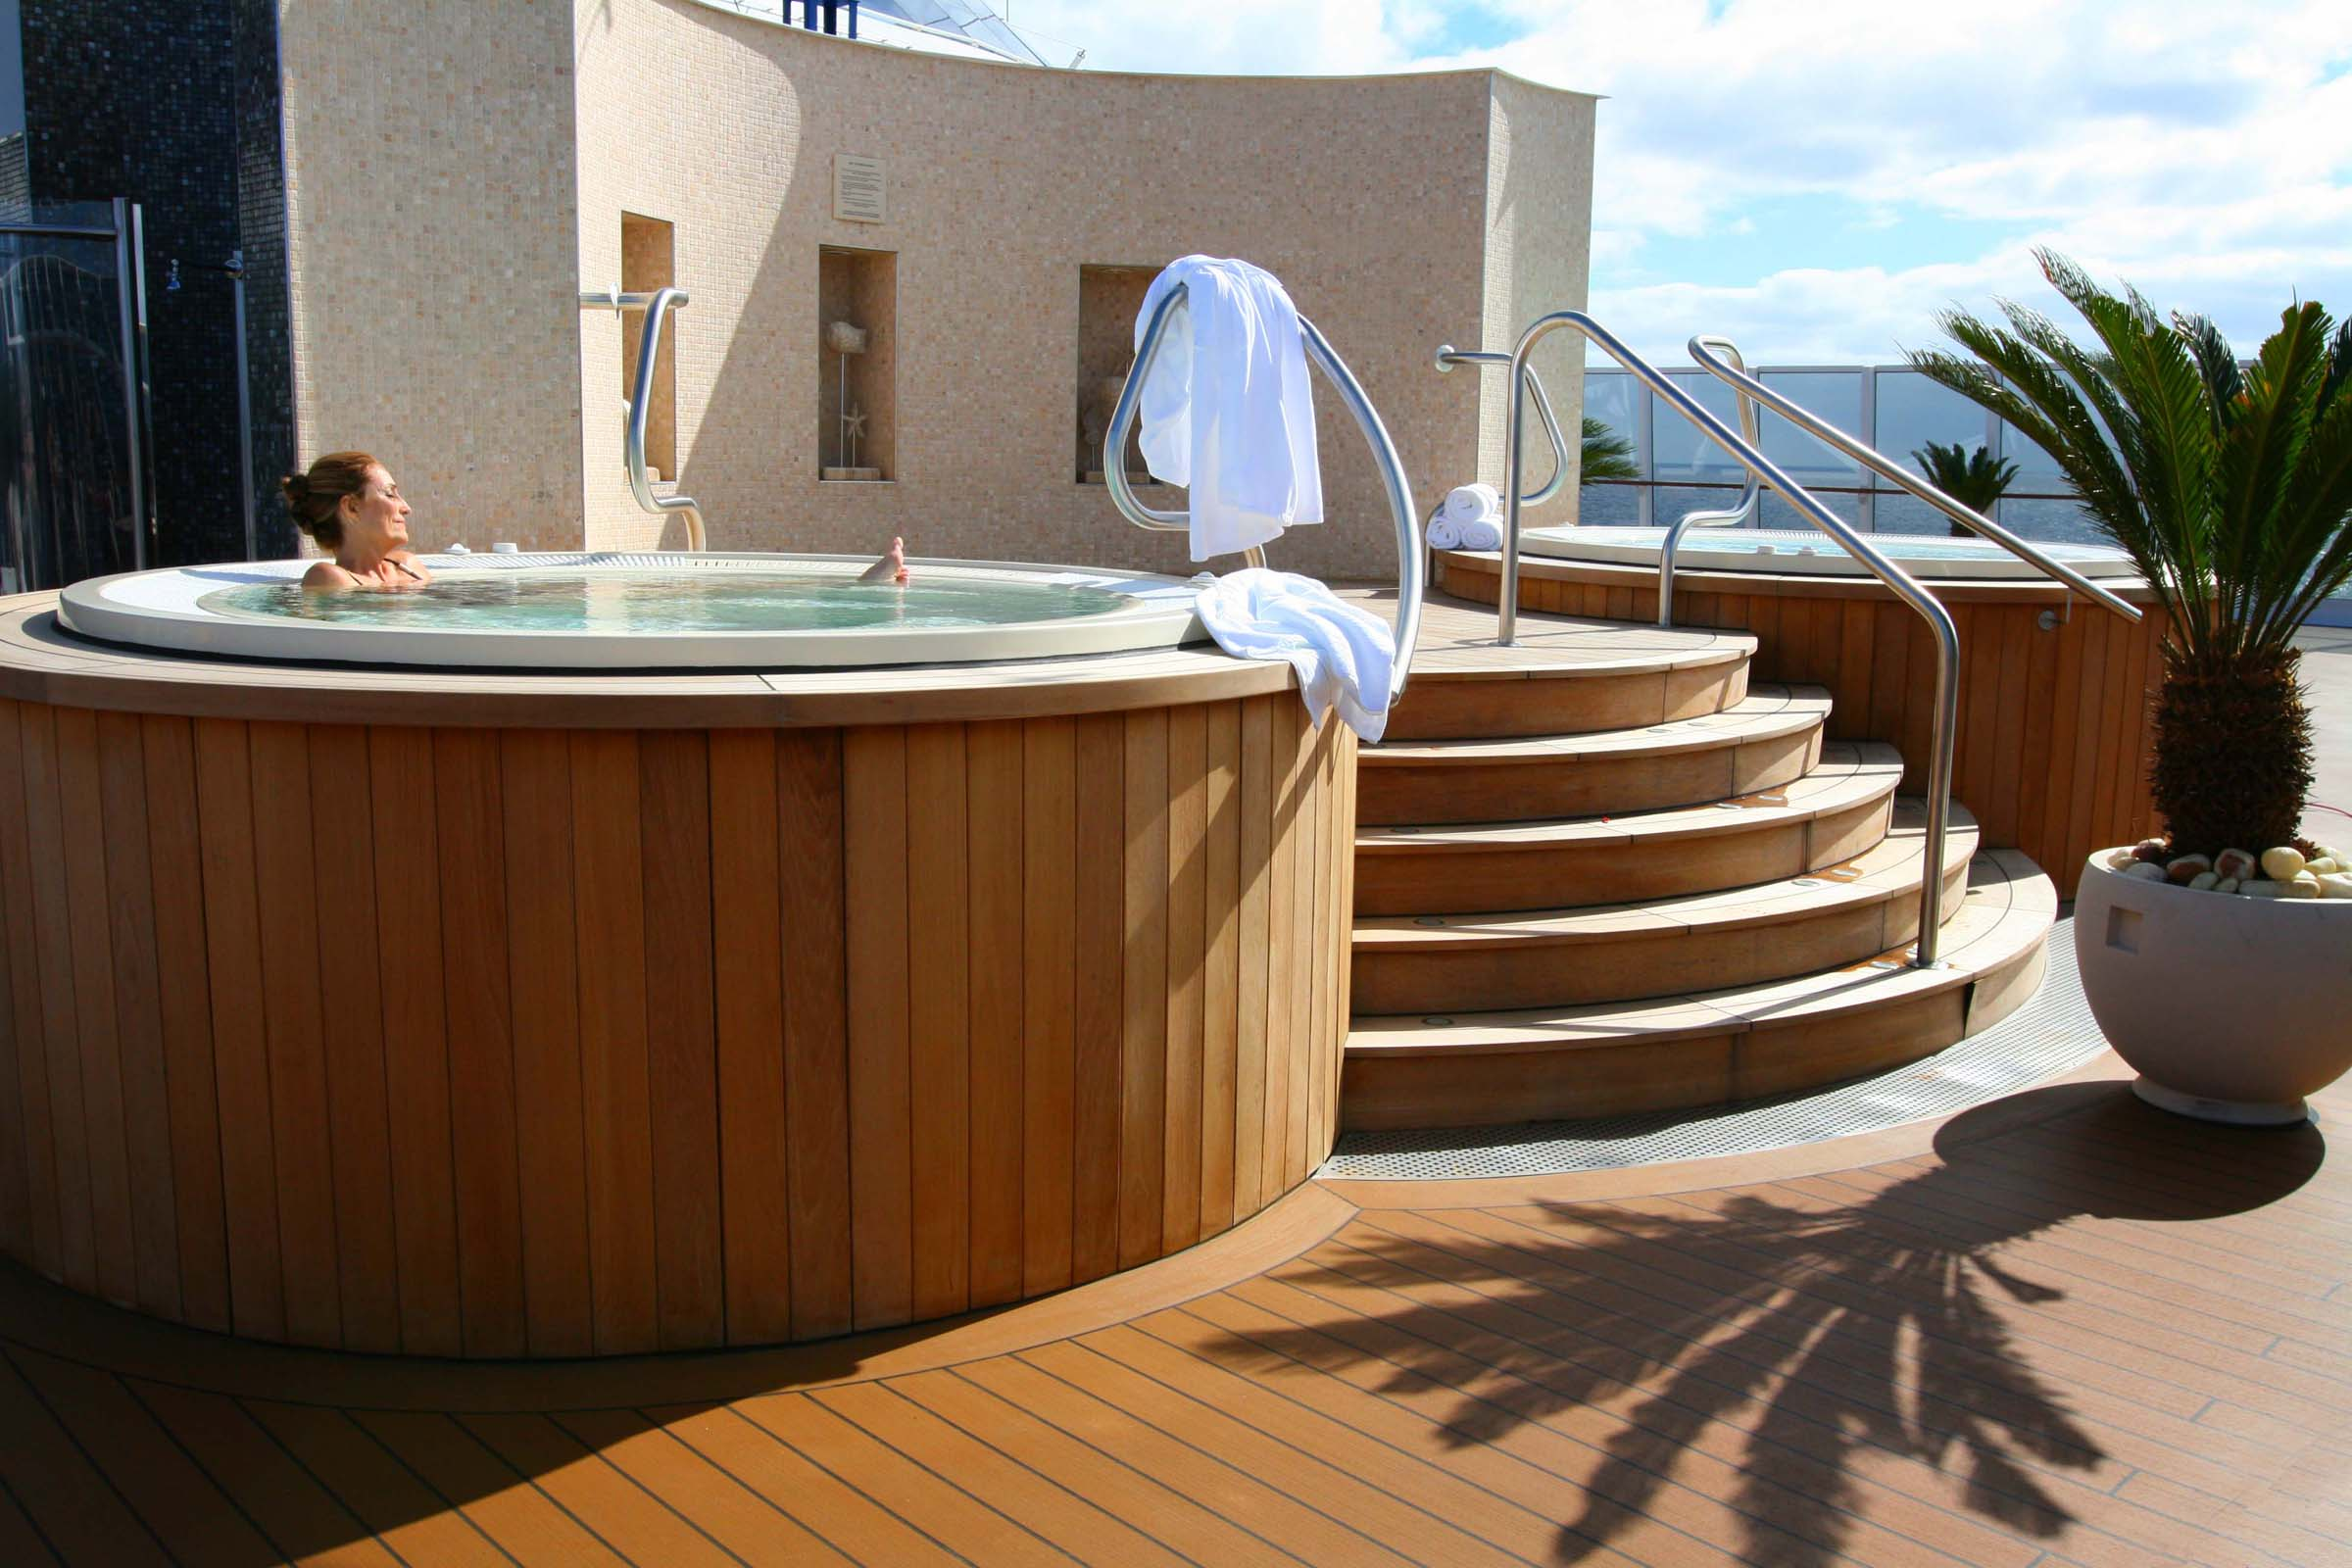 Oceania Cruises Oceania Class Interior Spa Private Terrace.jpg